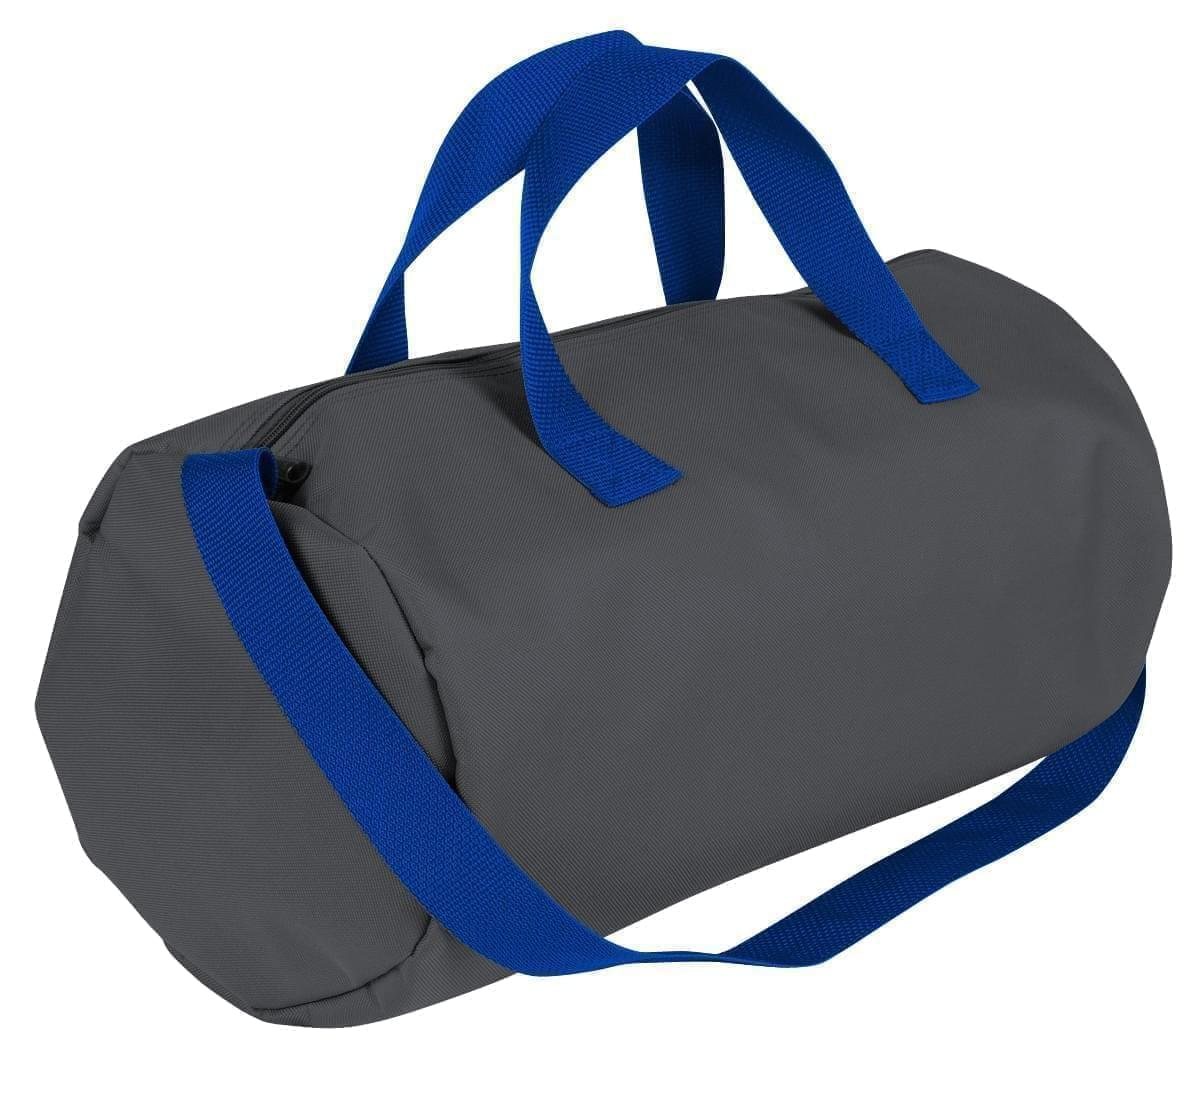 USA Made Nylon Poly Gym Roll Bags, Graphite-Royal Blue, ROCX31AAR3